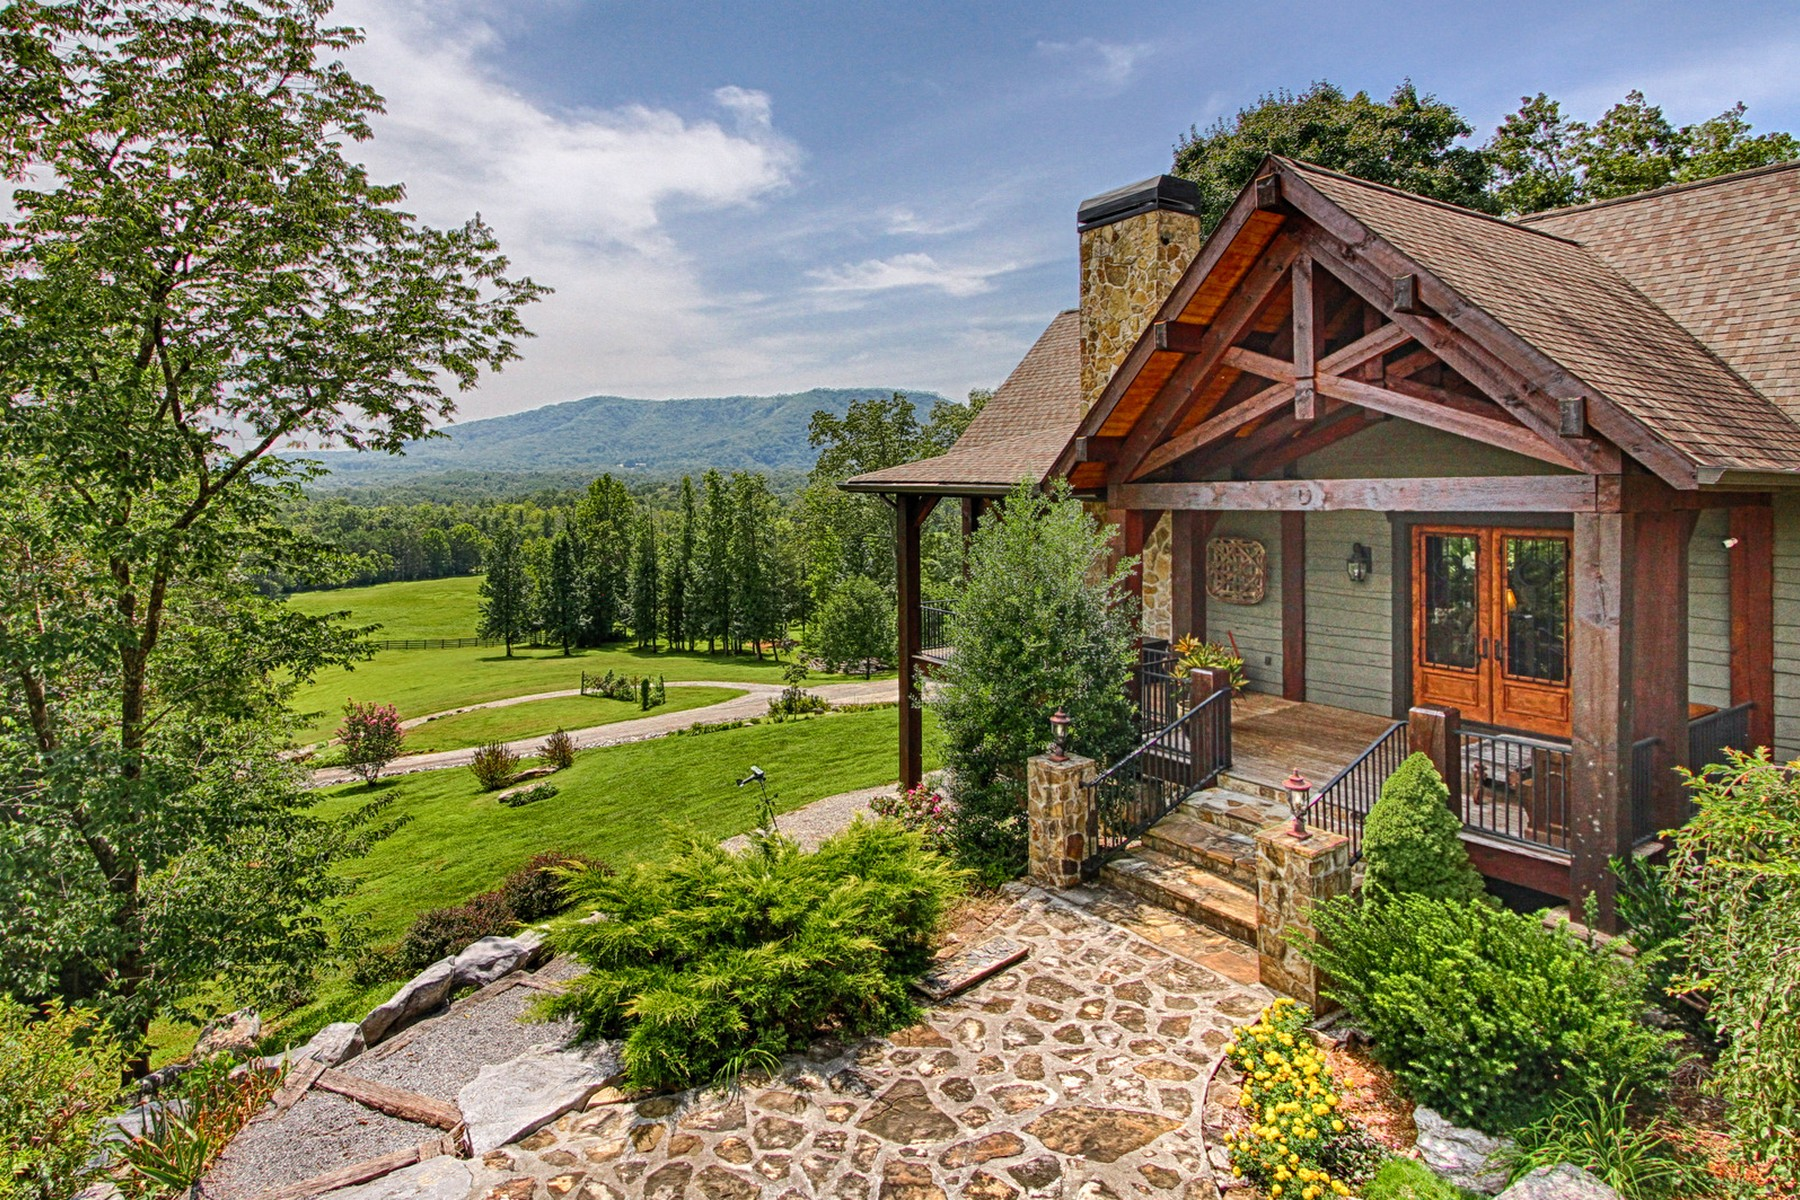 Single Family Homes for Active at Starr View Farm 790 Lick Creek Road Tellico Plains, Tennessee 37385 United States